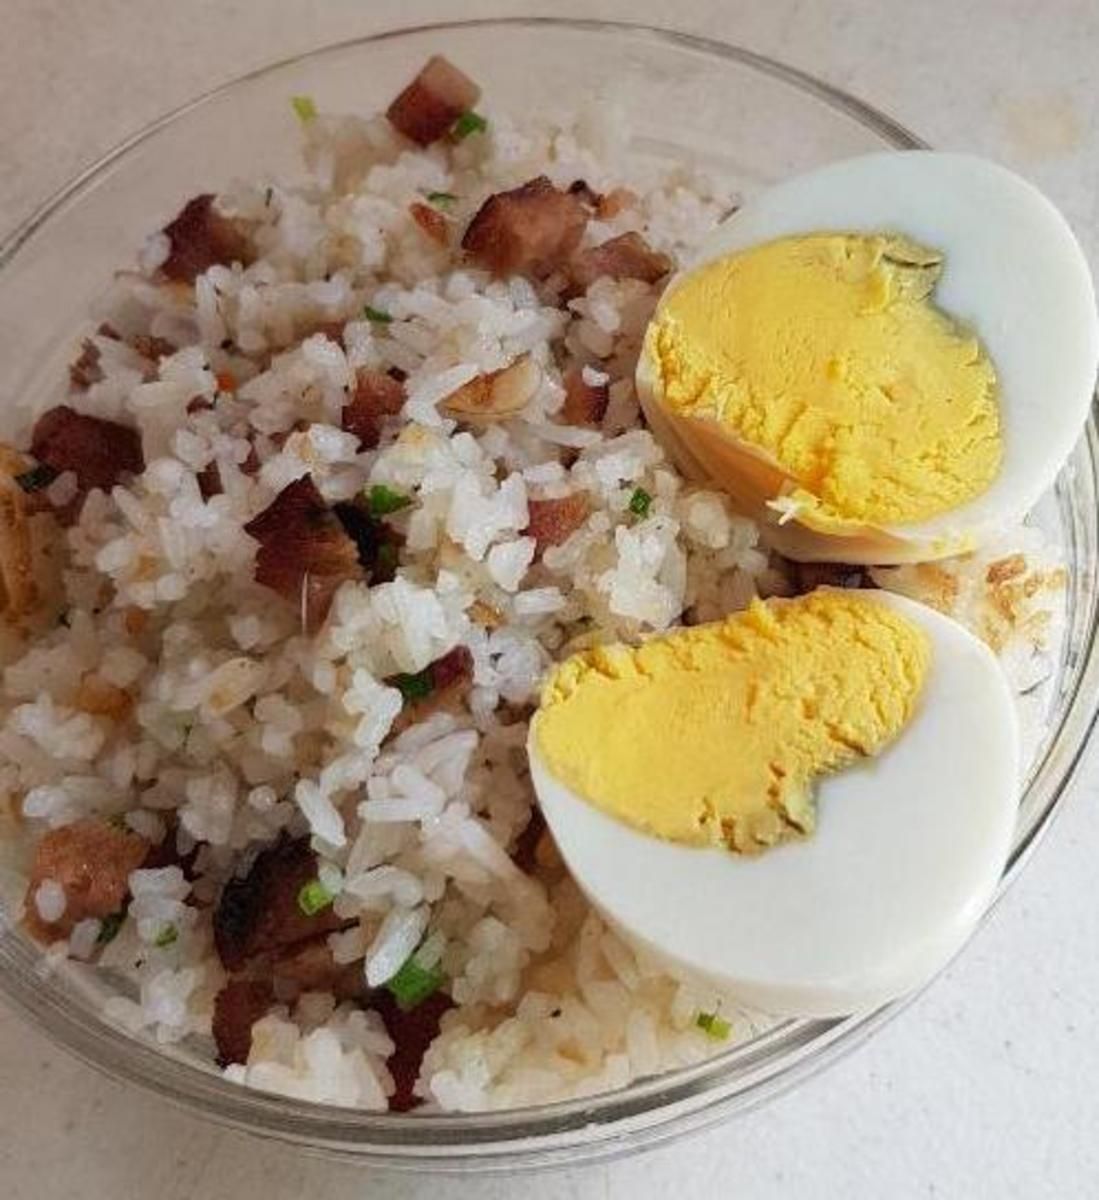 Fried Rice with Embutido and Boiled Egg